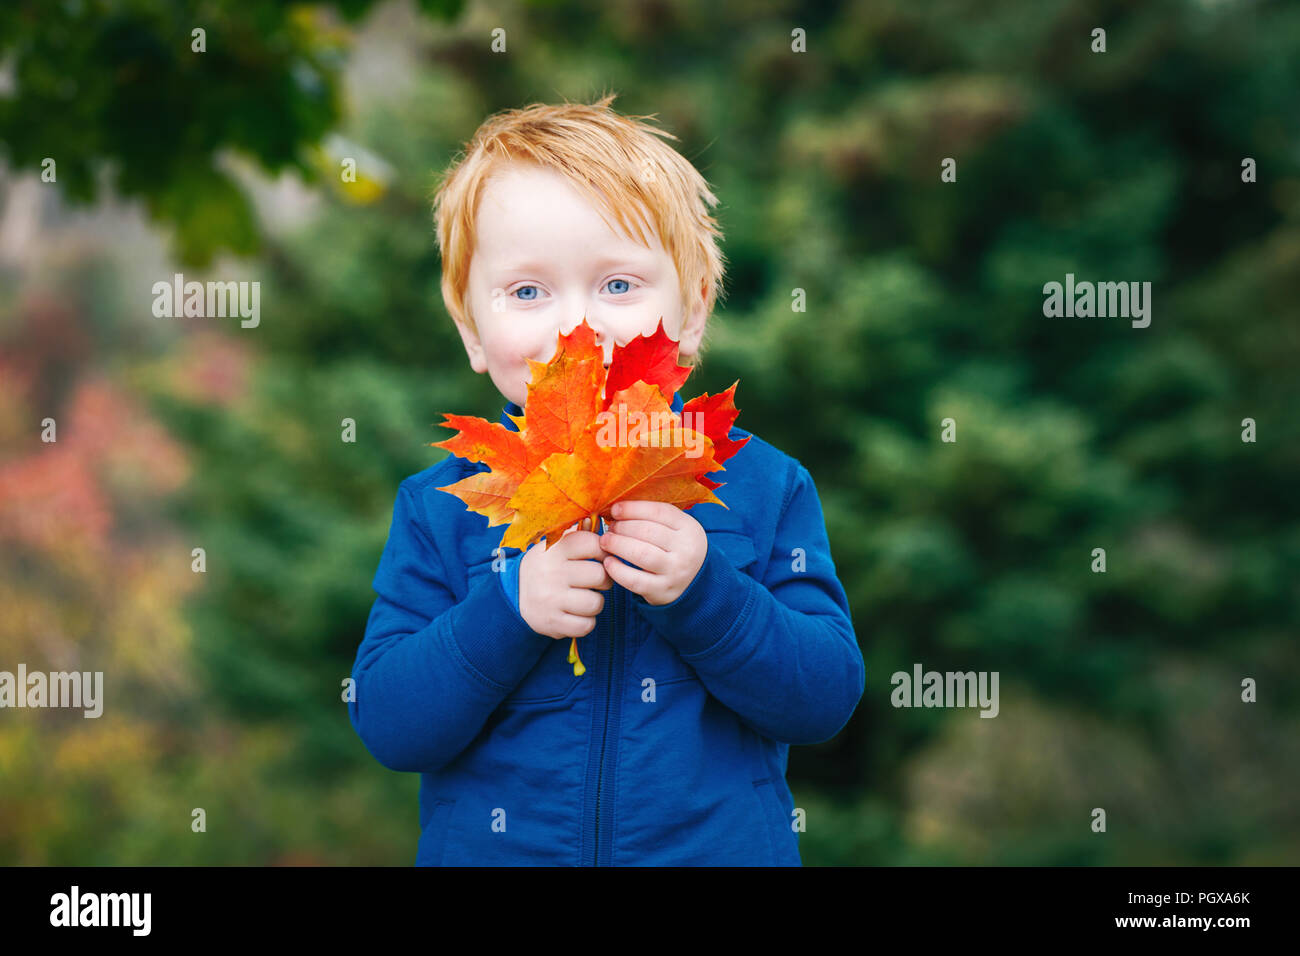 5e863ac6fde Portrait of cute funny adorable smiling Caucasian red-haired boy with blue  eyes holding autumn